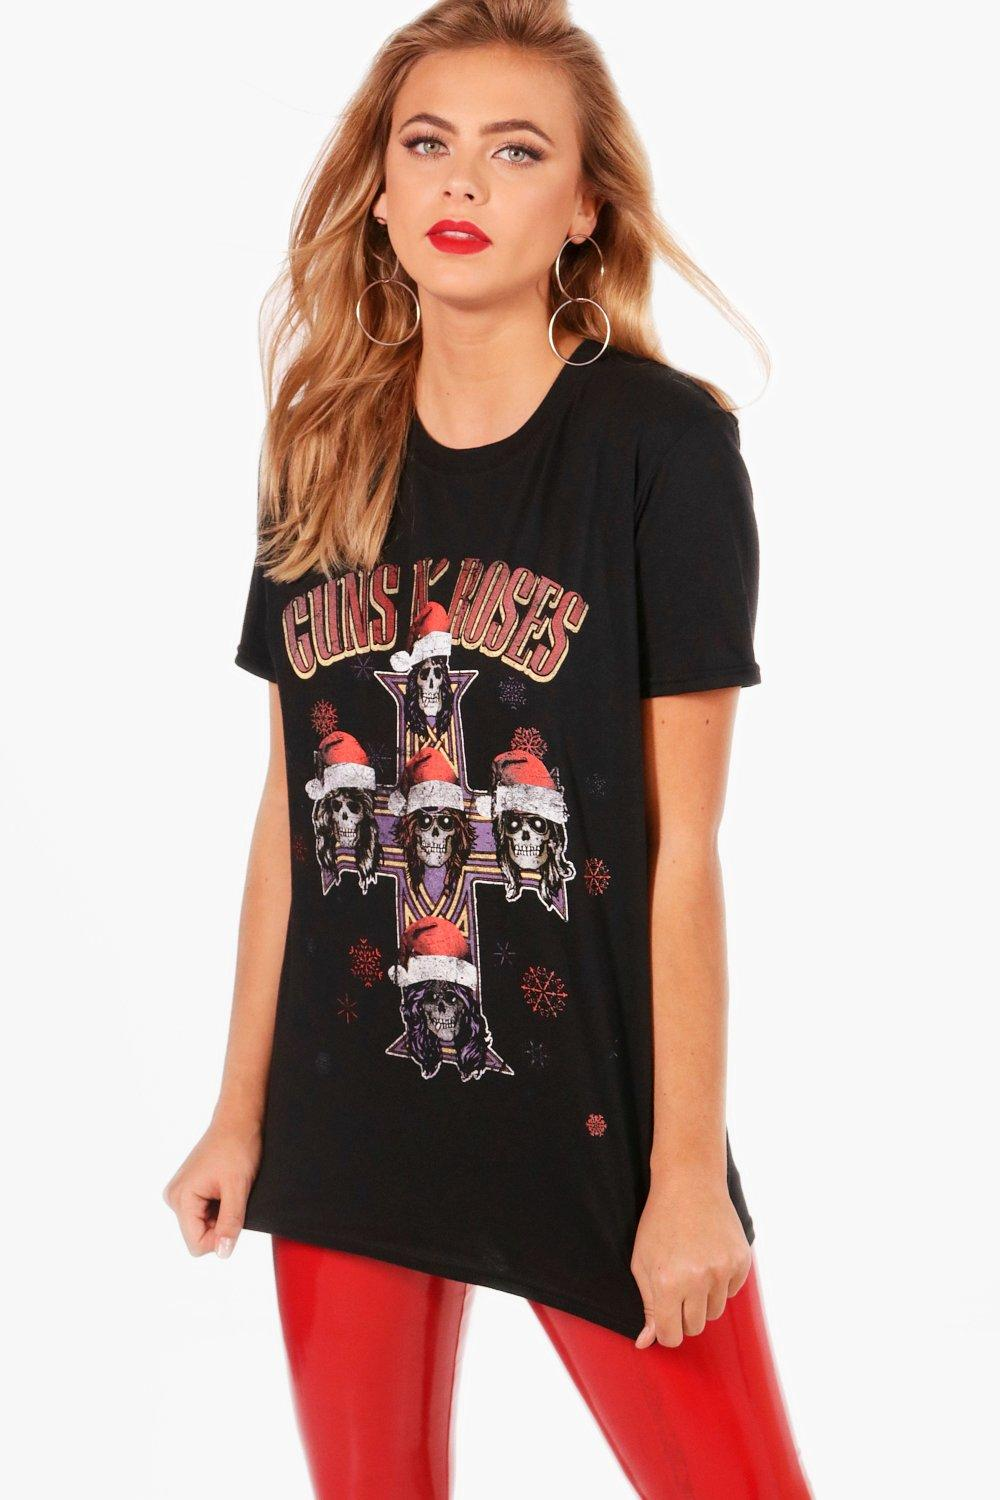 Clare Guns 'N' Roses Christmas Band T-Shirt